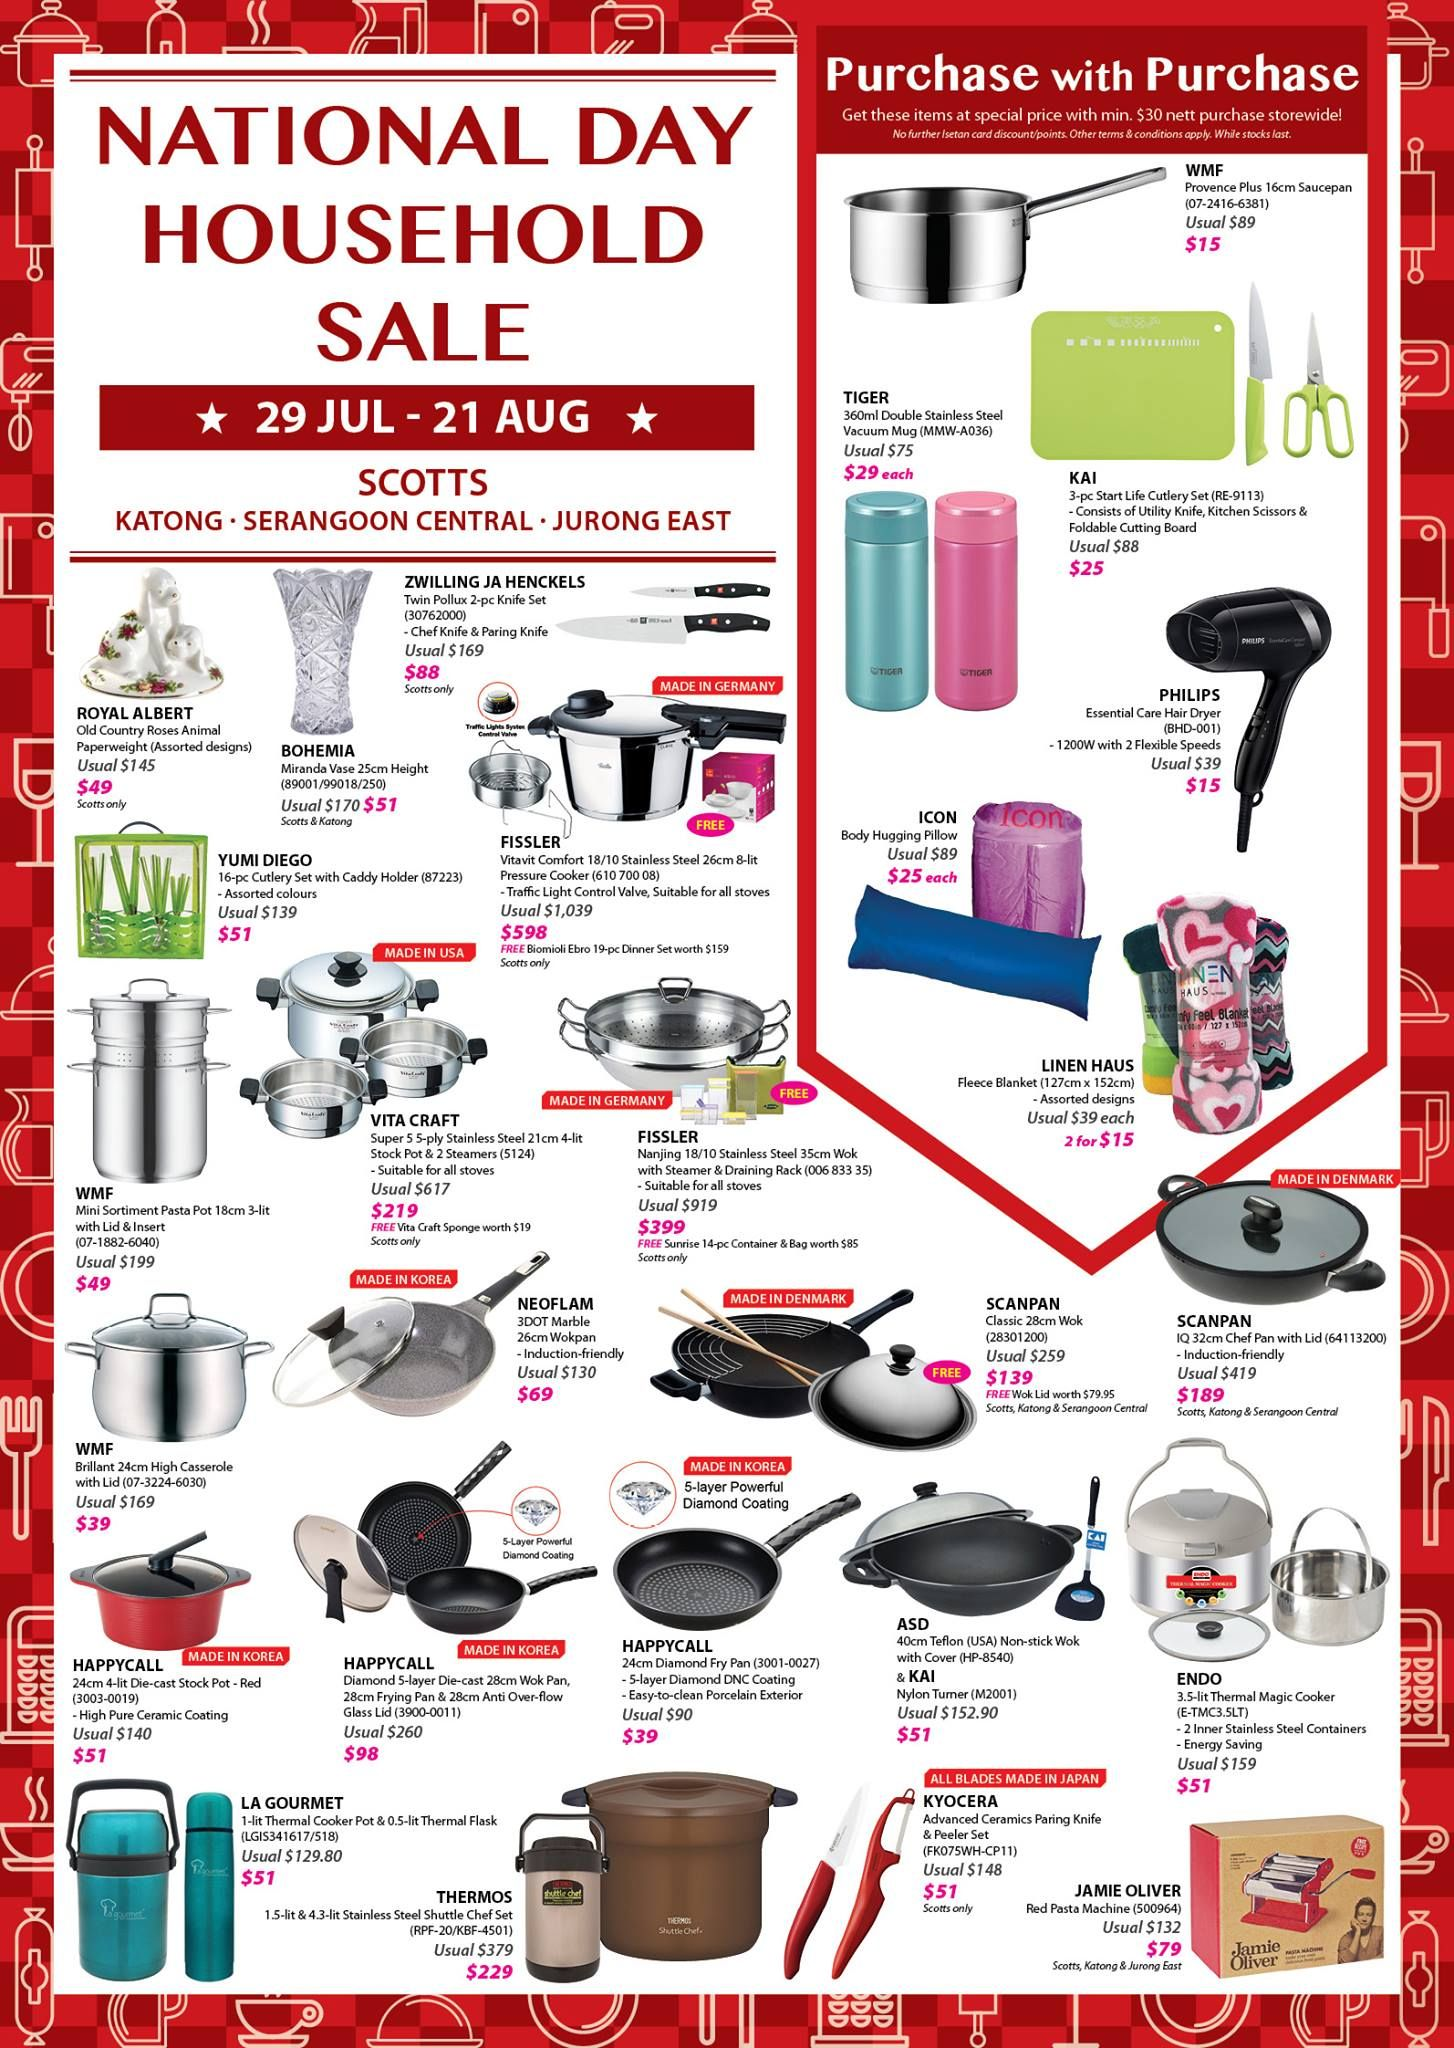 Isetan National Day Household Sale Singapore Promotion 29 Jul To 21 Aug 2016 Why Not Deals National Day Isetan Sale